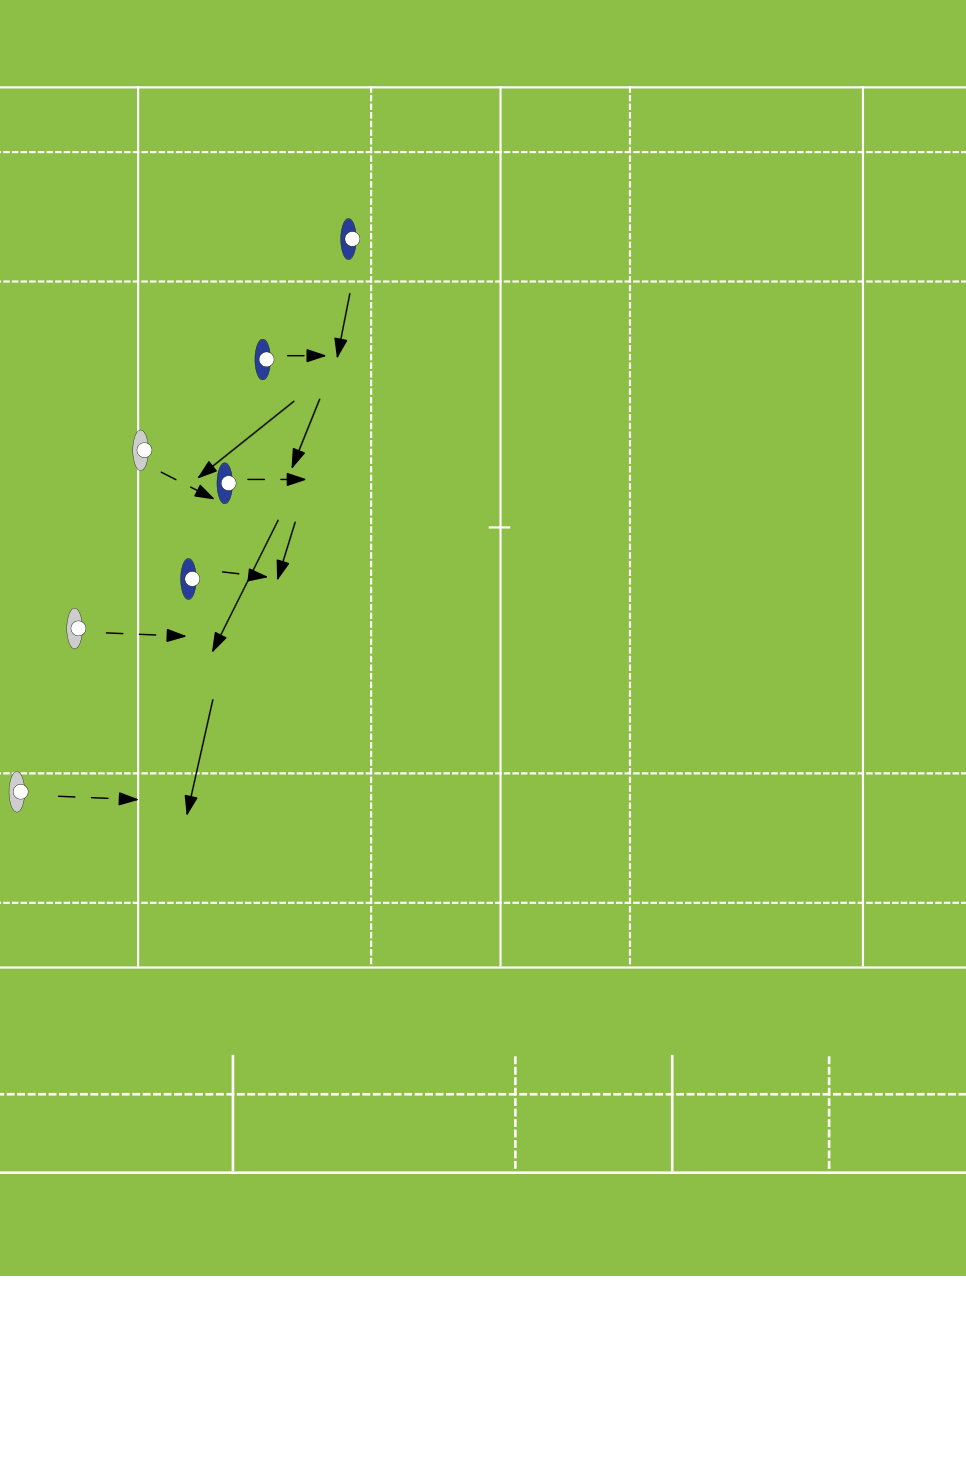 Copy of OptionsMatch RelatedRugby Drills Coaching